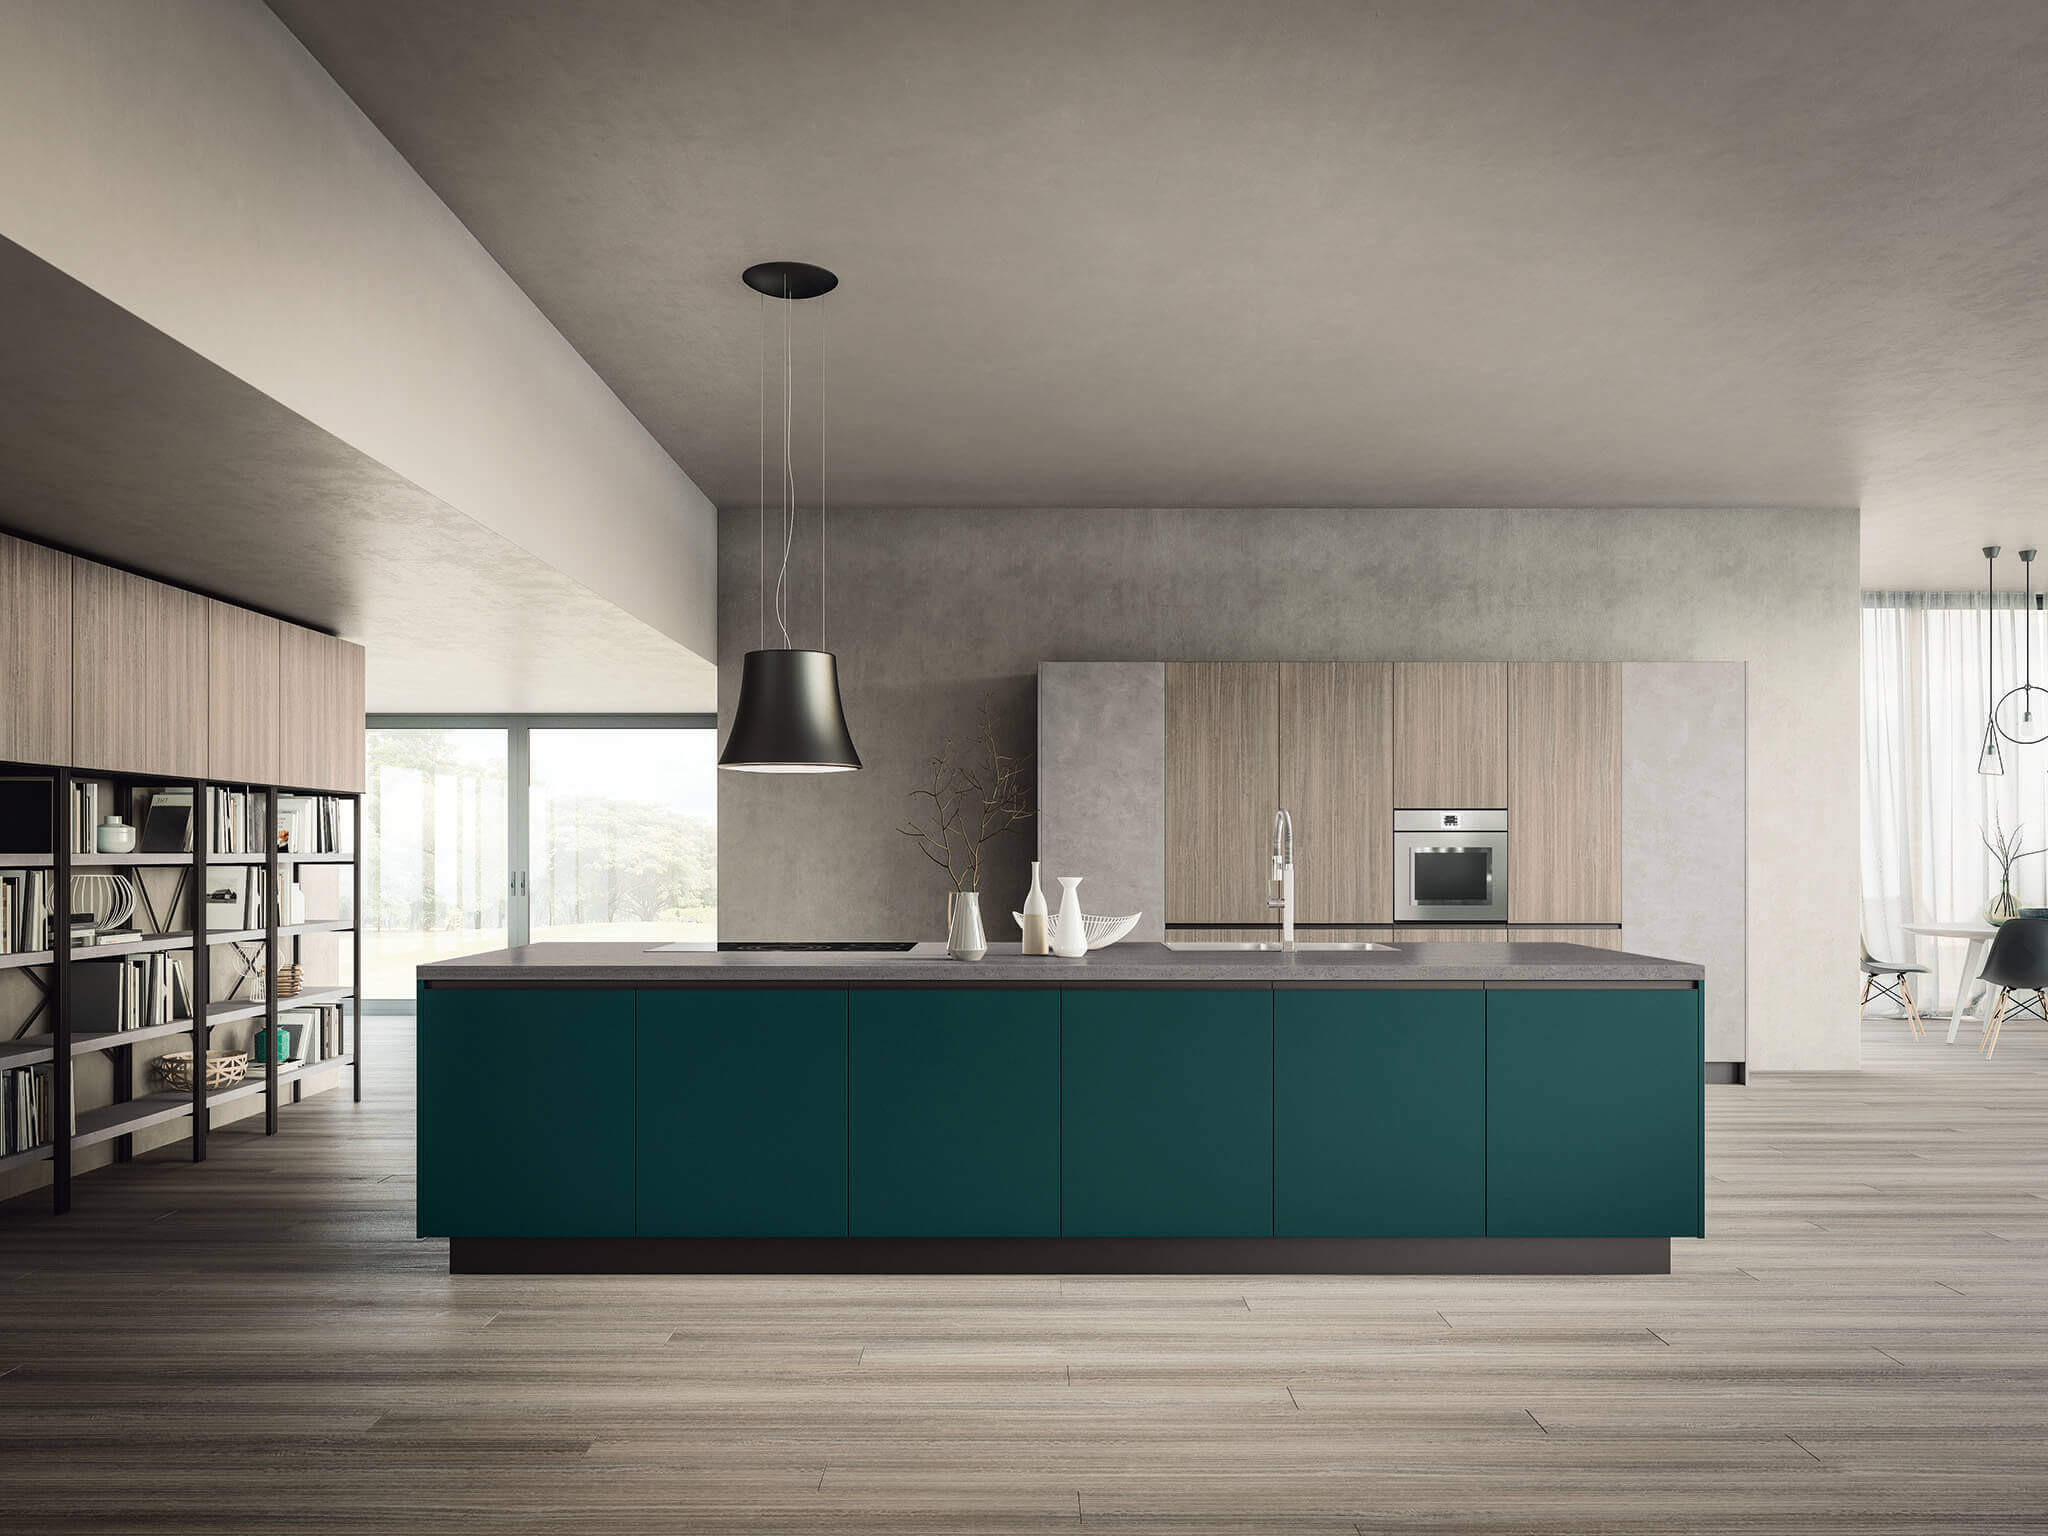 Isabel contemporary kitchen cabinet Matt lacquered